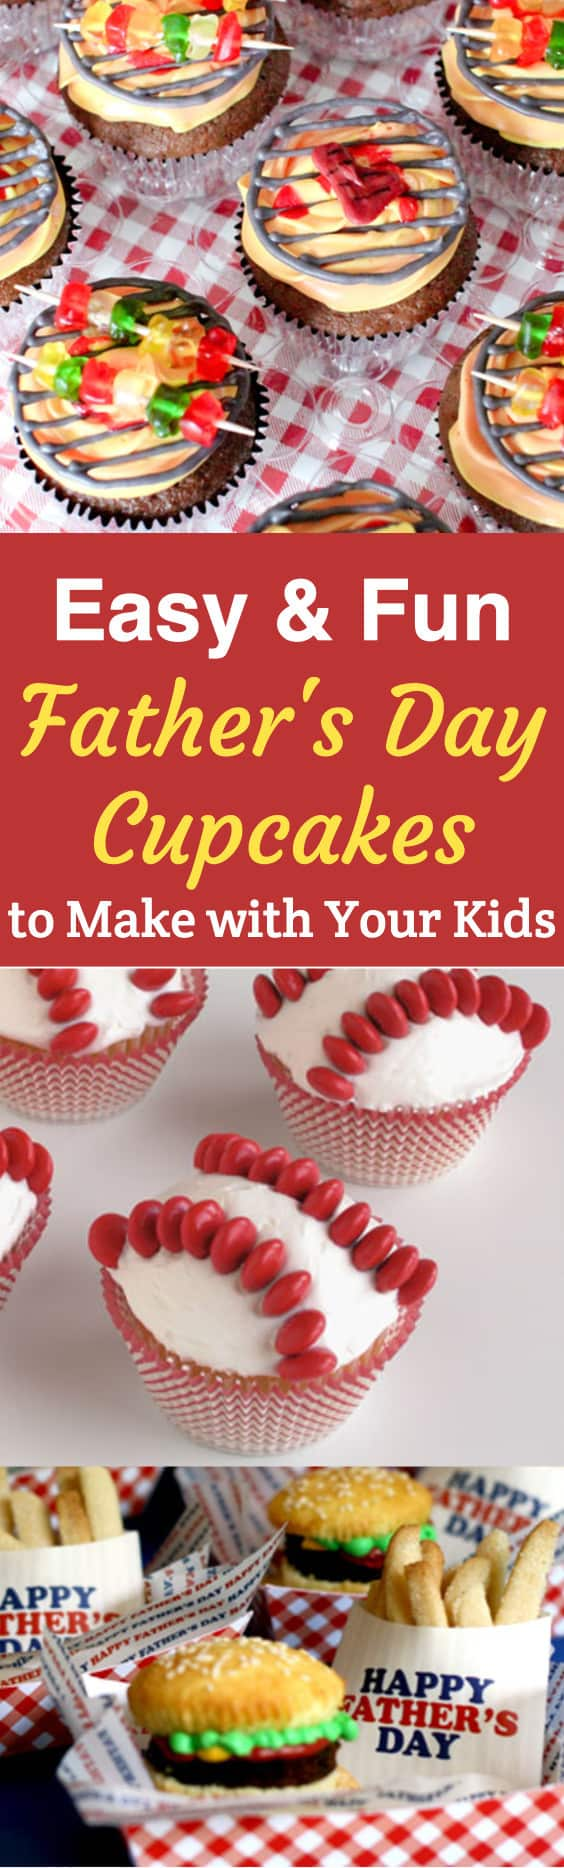 Easy and Fun Father's Day cupcakes - 13 cute Father's Day cupcake ideas that are easy enough for the kids to make!